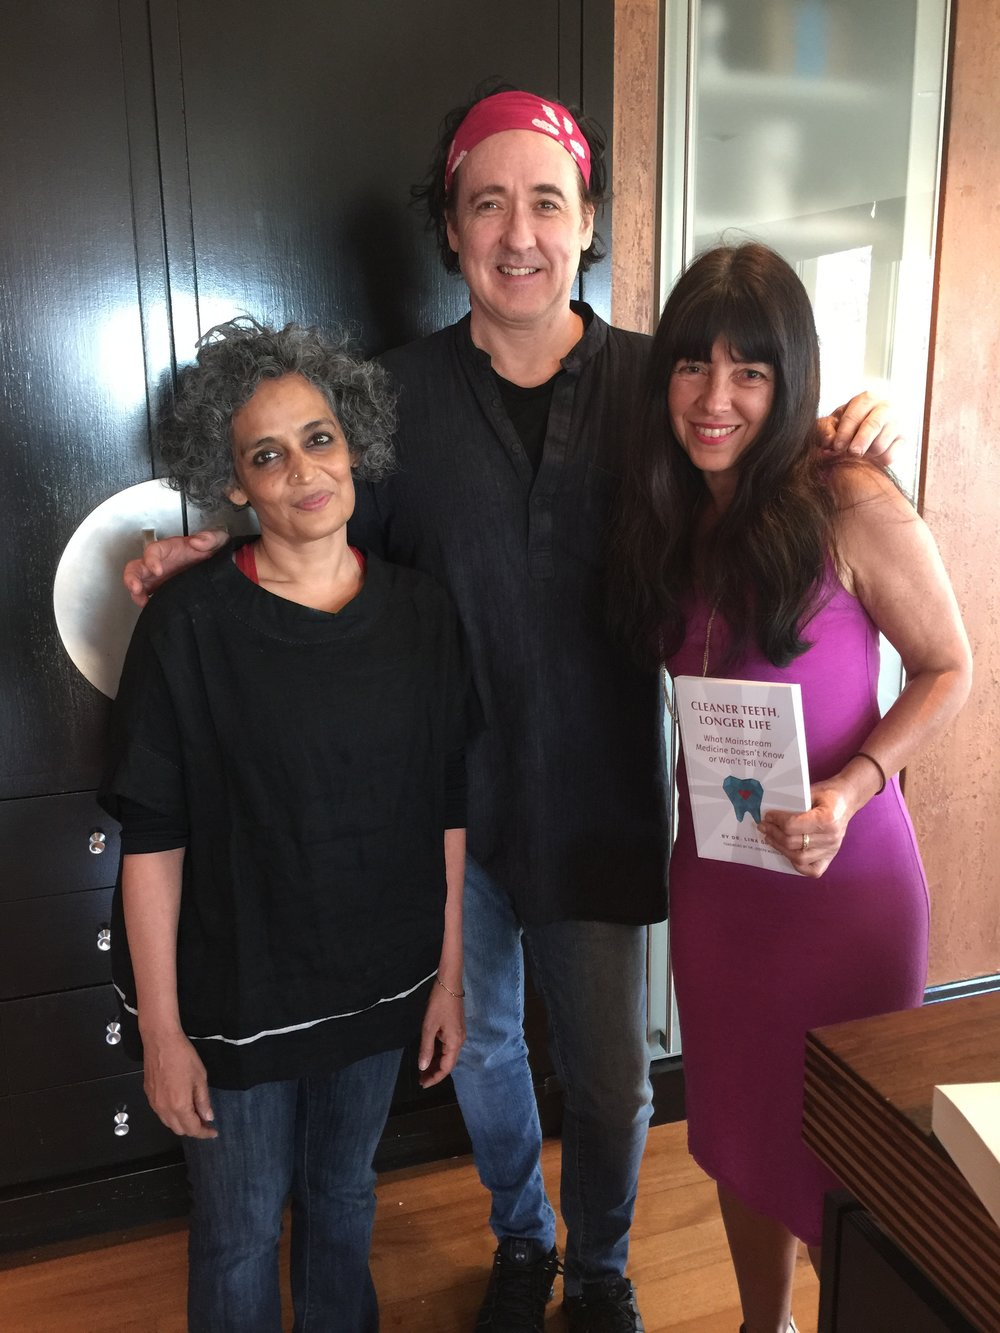 Dr Garcia with patient, actor, producer and screenwriter John Cusack and author Arundhati Roy who are co-authors of the recent book Things That Can and Cannot be Said